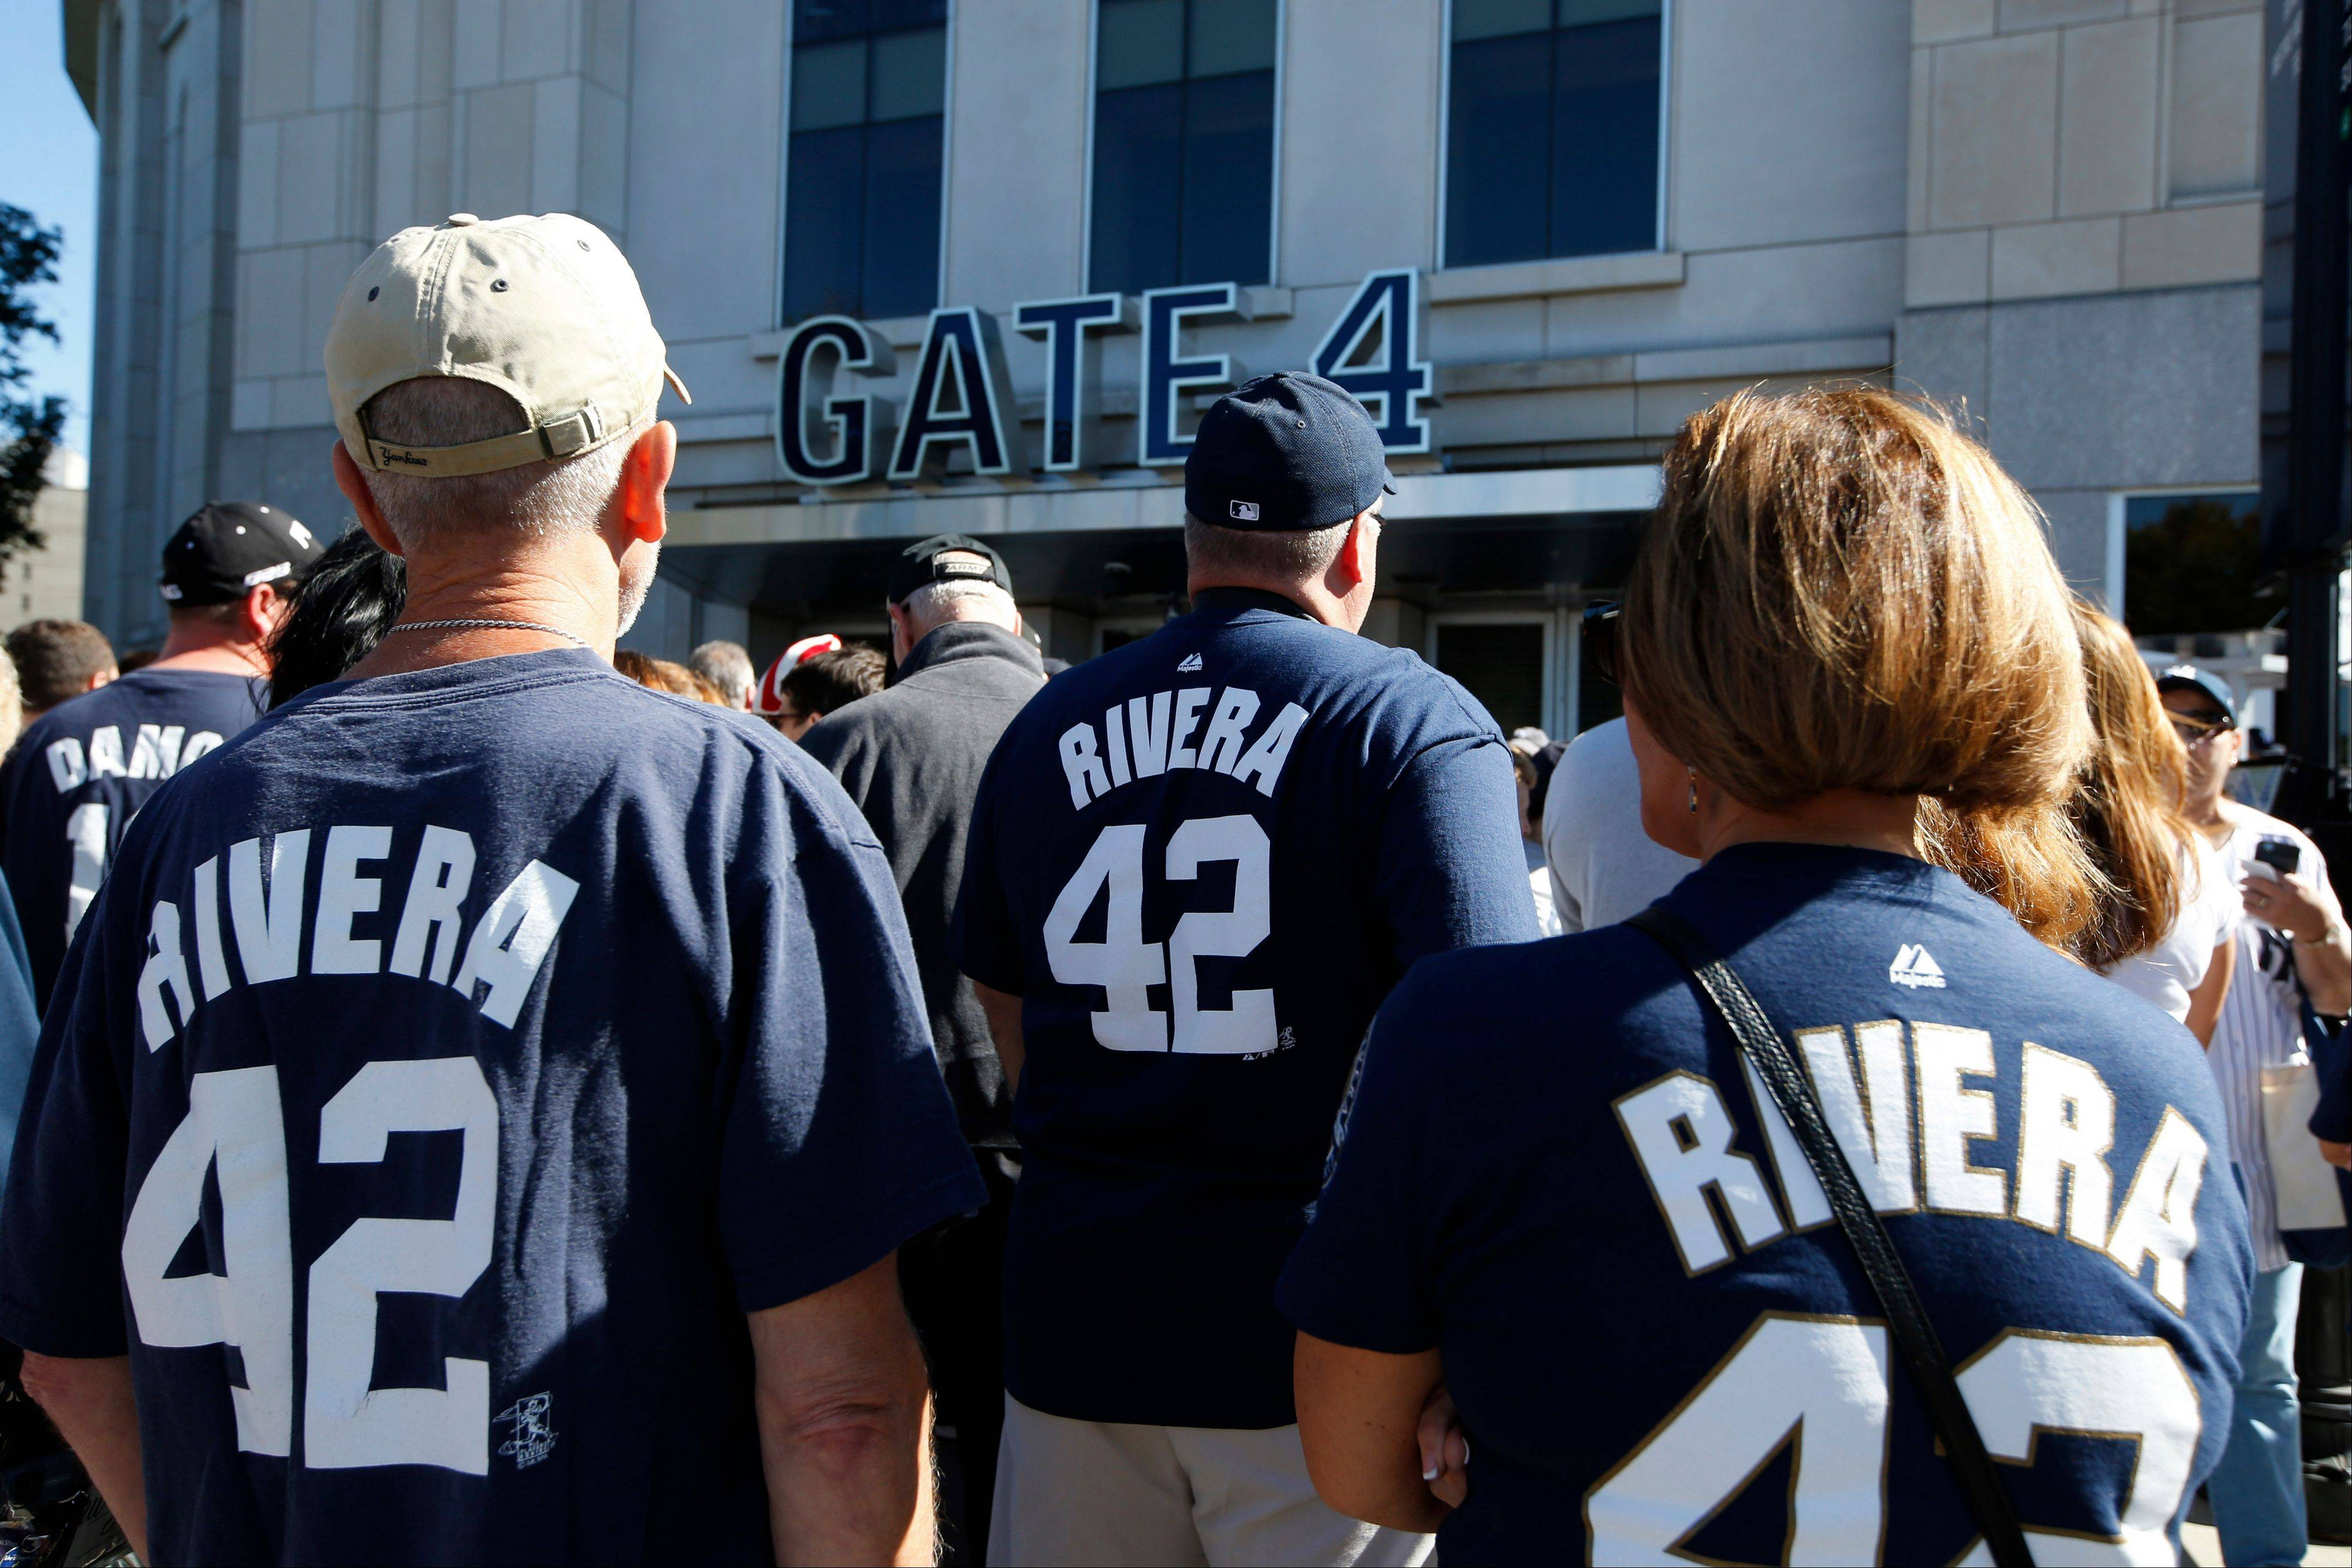 Fans of New York Yankees relief pitcher Mariano Rivera line up outside Yankee Stadium before their baseball game against the San Francisco Giants, Sunday, Sept. 22, 2013, in New York. The Yankees plan to honor Rivera in a retirement ceremony.